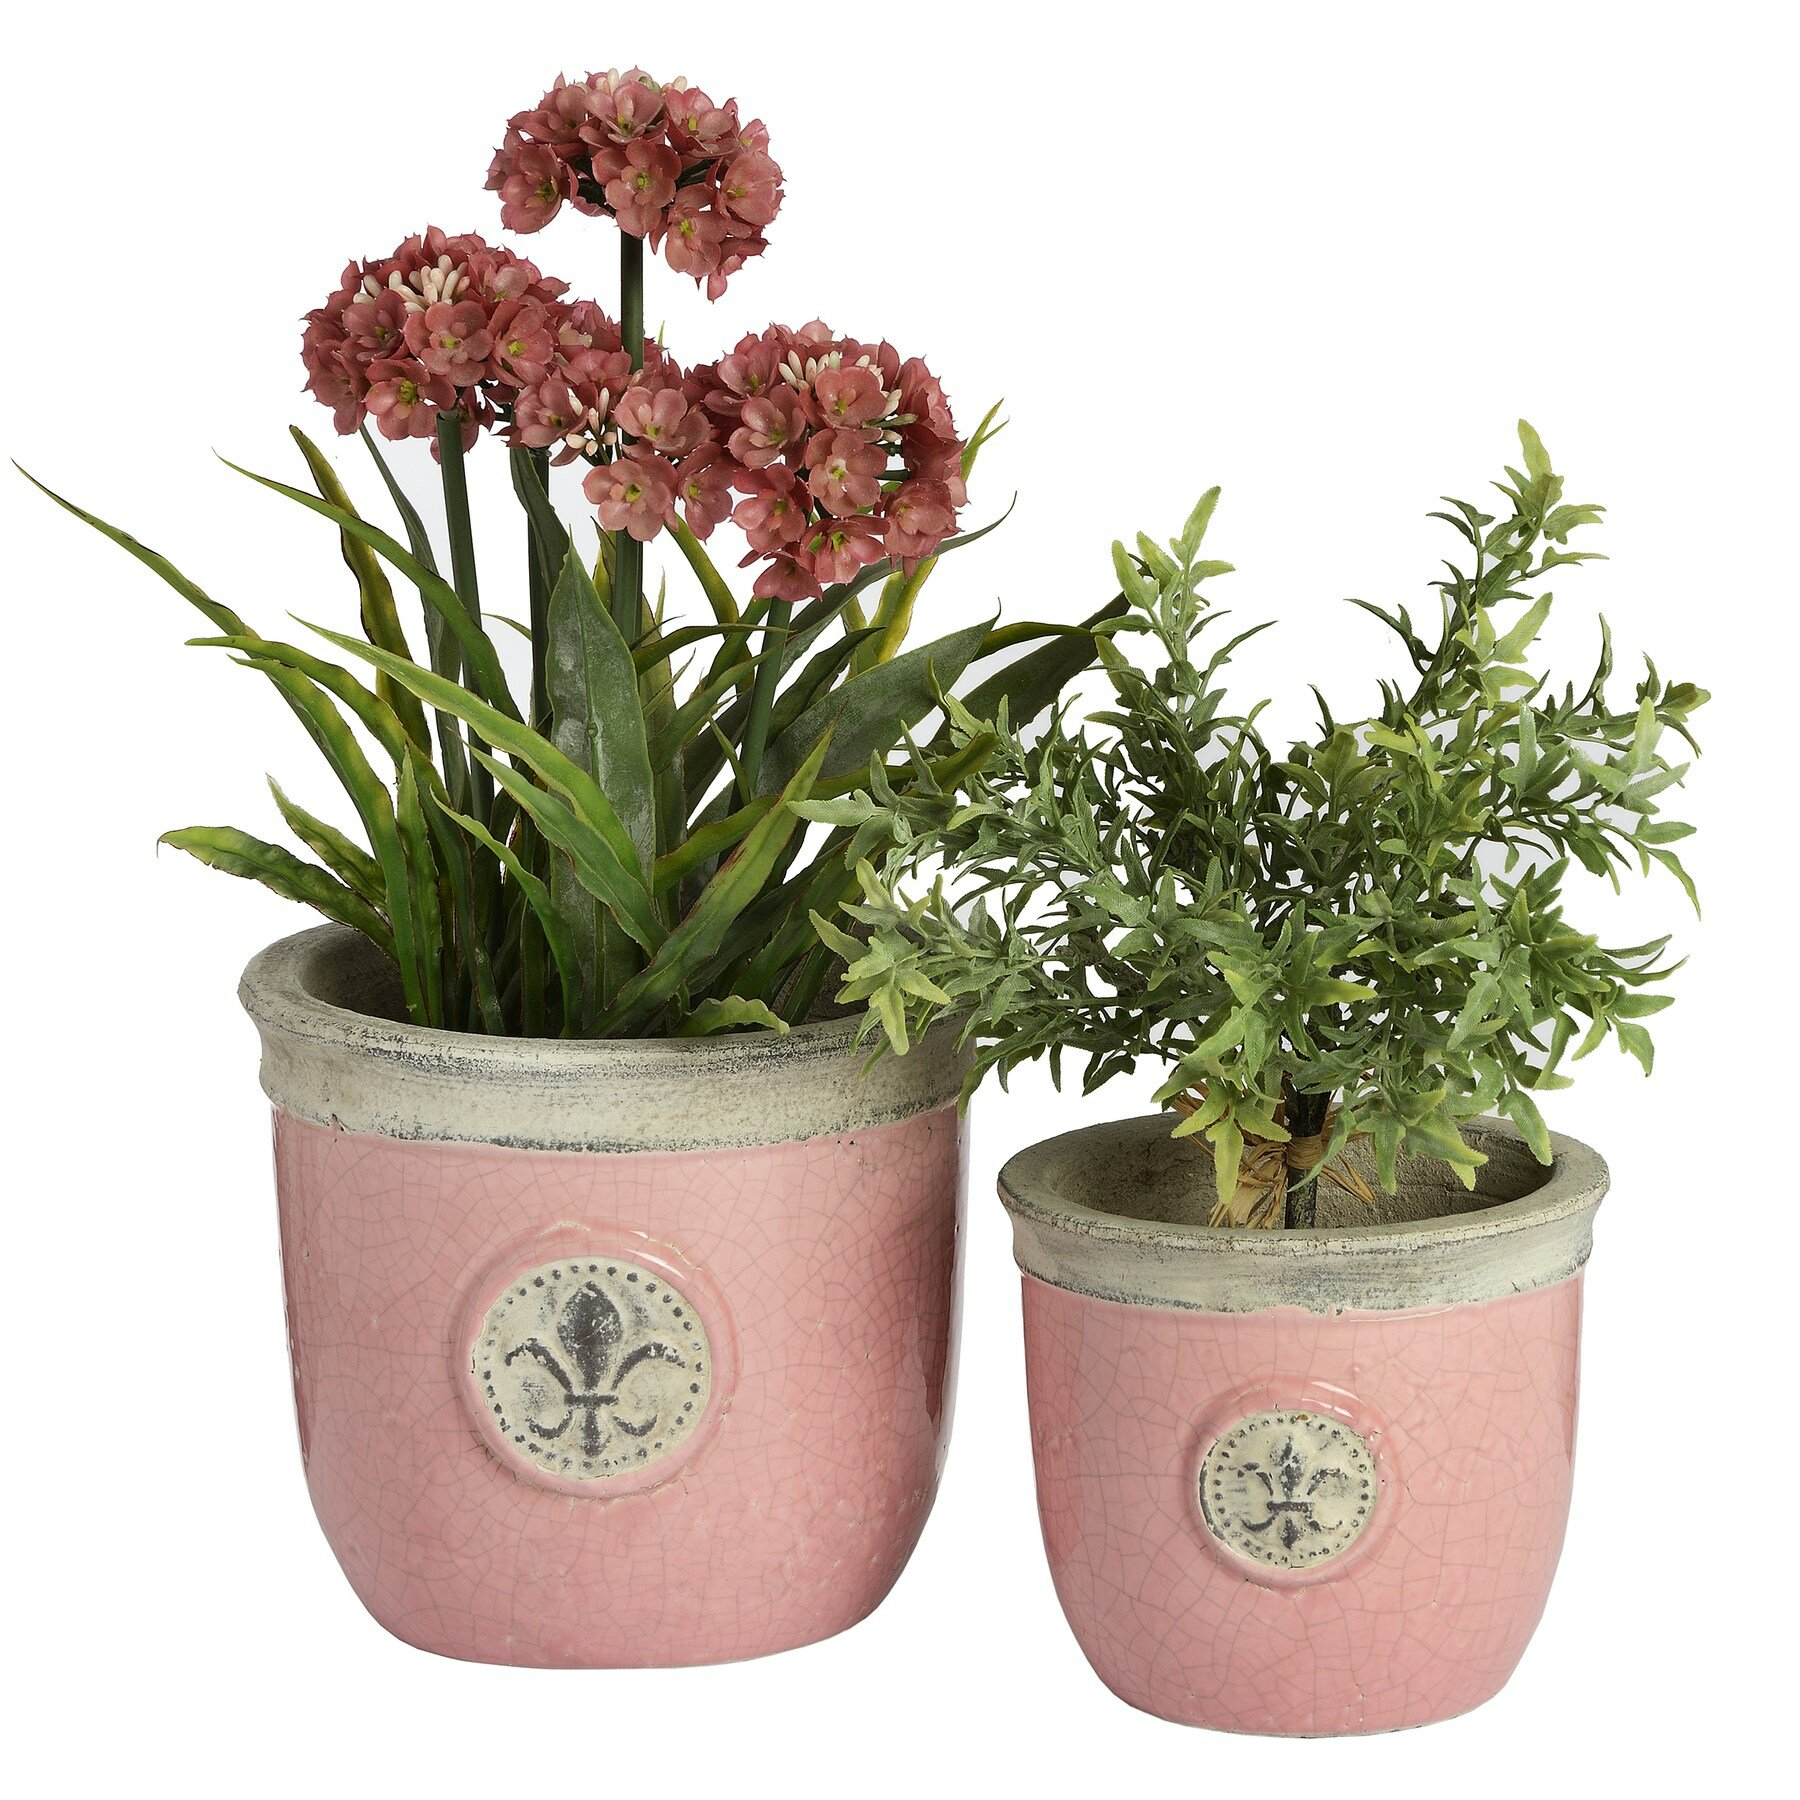 fleur de lys 2 piece round pot planter set wayfair uk. Black Bedroom Furniture Sets. Home Design Ideas